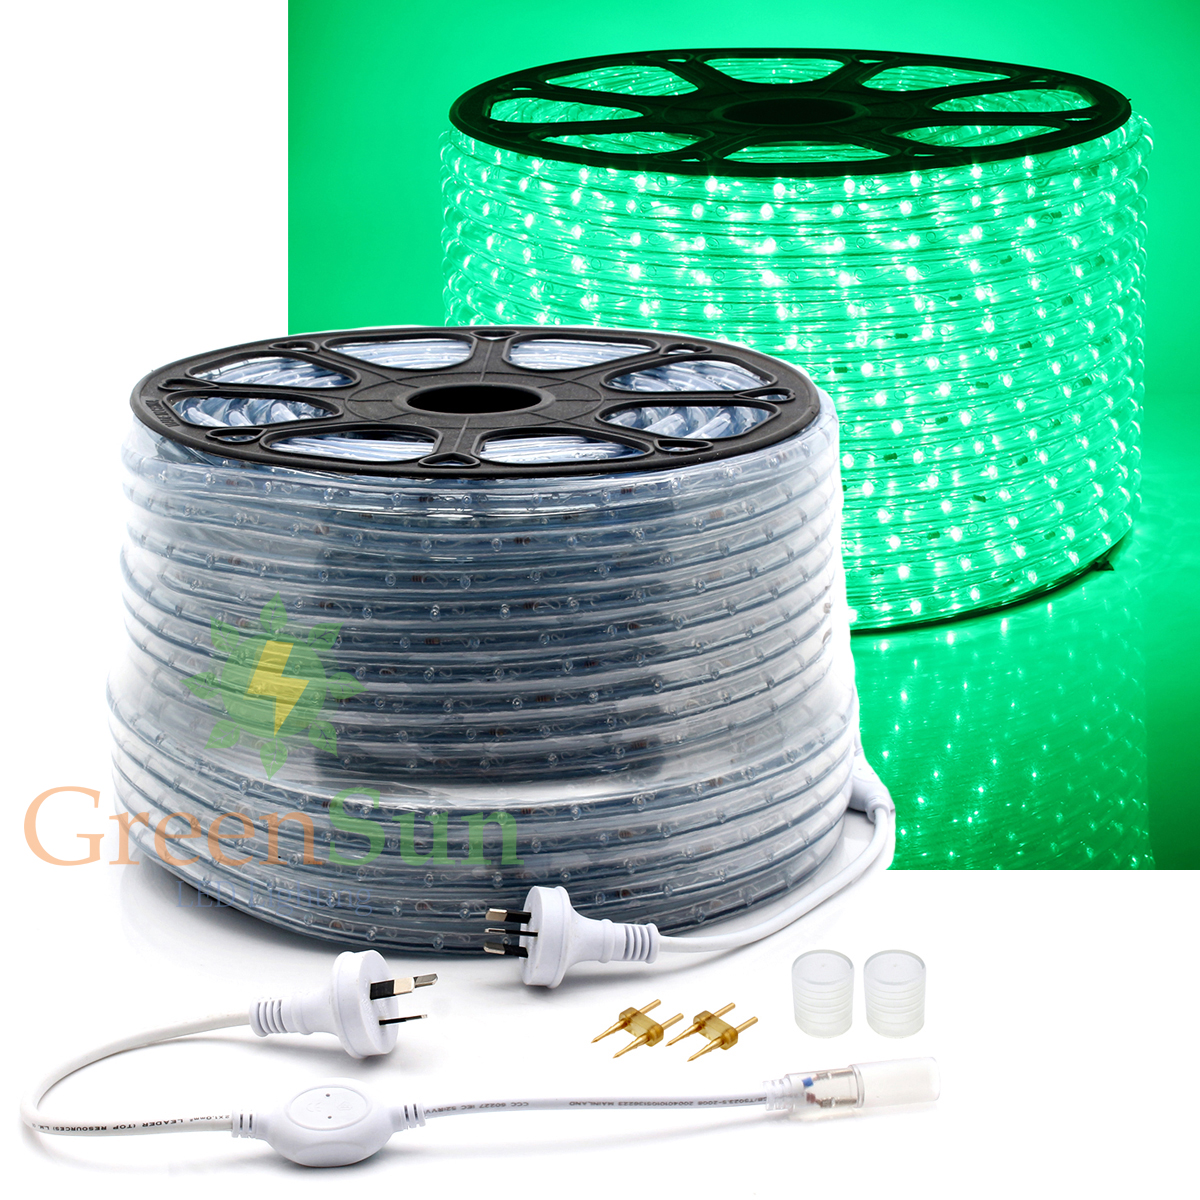 20-50M Green LED Strip Light 36leds/m 2-Wire Waterproof IP68 Home Garden Xmas Lamp LED Strip Light With Power line колонка interstep sbs 150 funny bunny light green